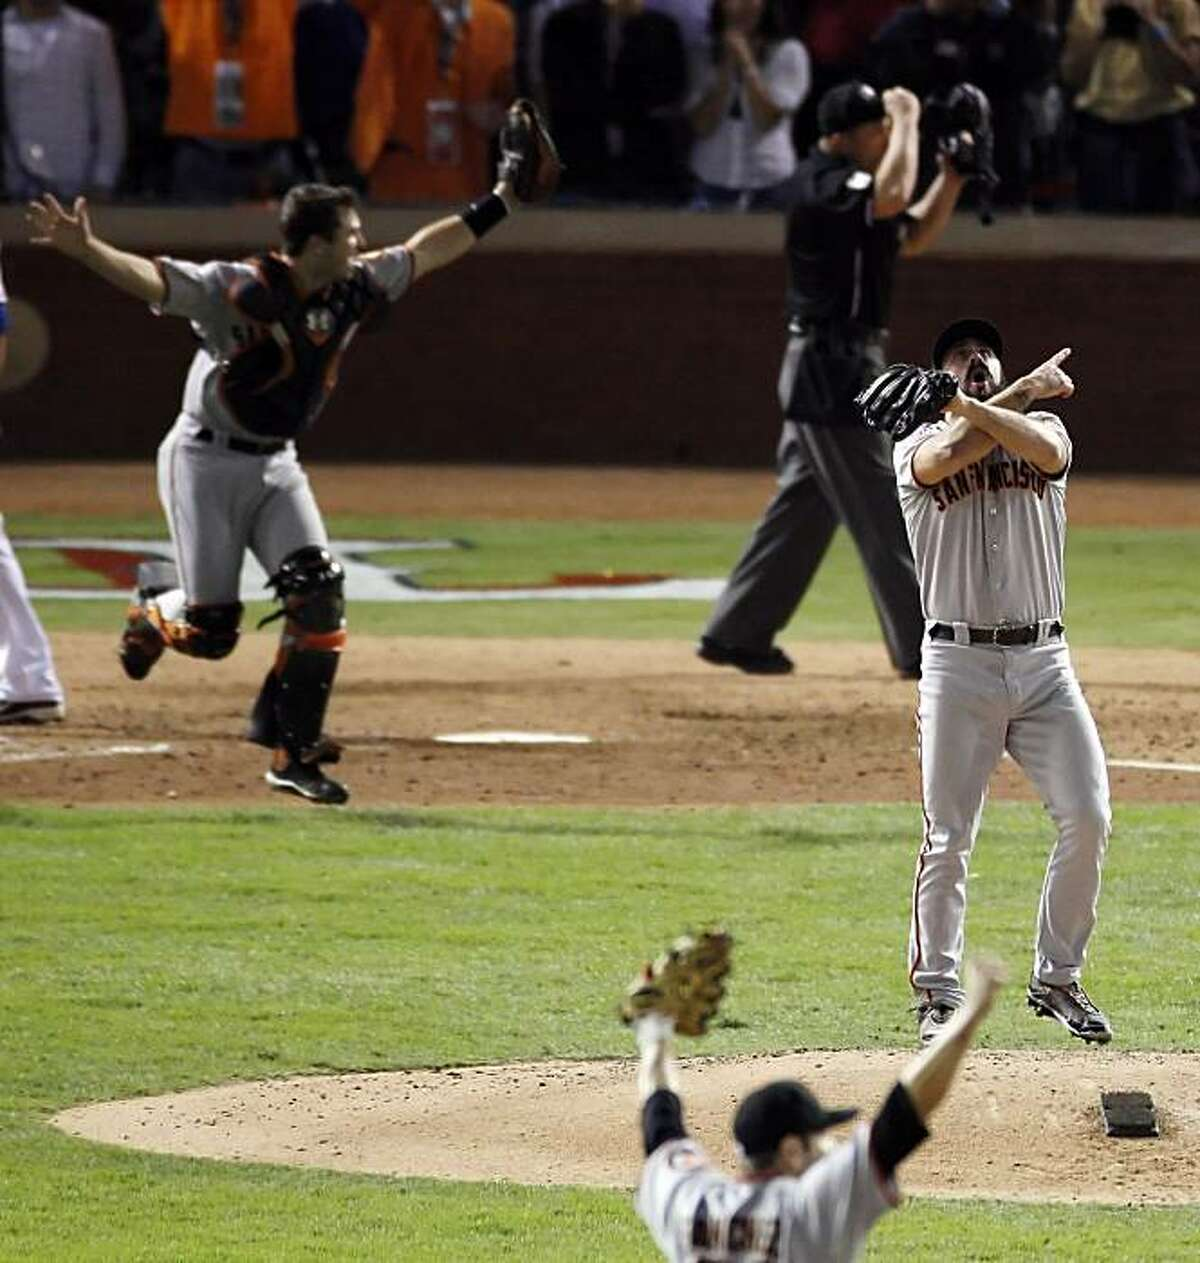 Giants' closer, Brian Wilson celebrates after striking out Nelson Cruz of the Texas Rangers for the final out of the World Series. The San Francisco Giants defeated the Texas Rangers 3-1 in Game 5 of the World Series at Rangers Ballpark in Arlington, Tx, on Monday, November 1, 2010.